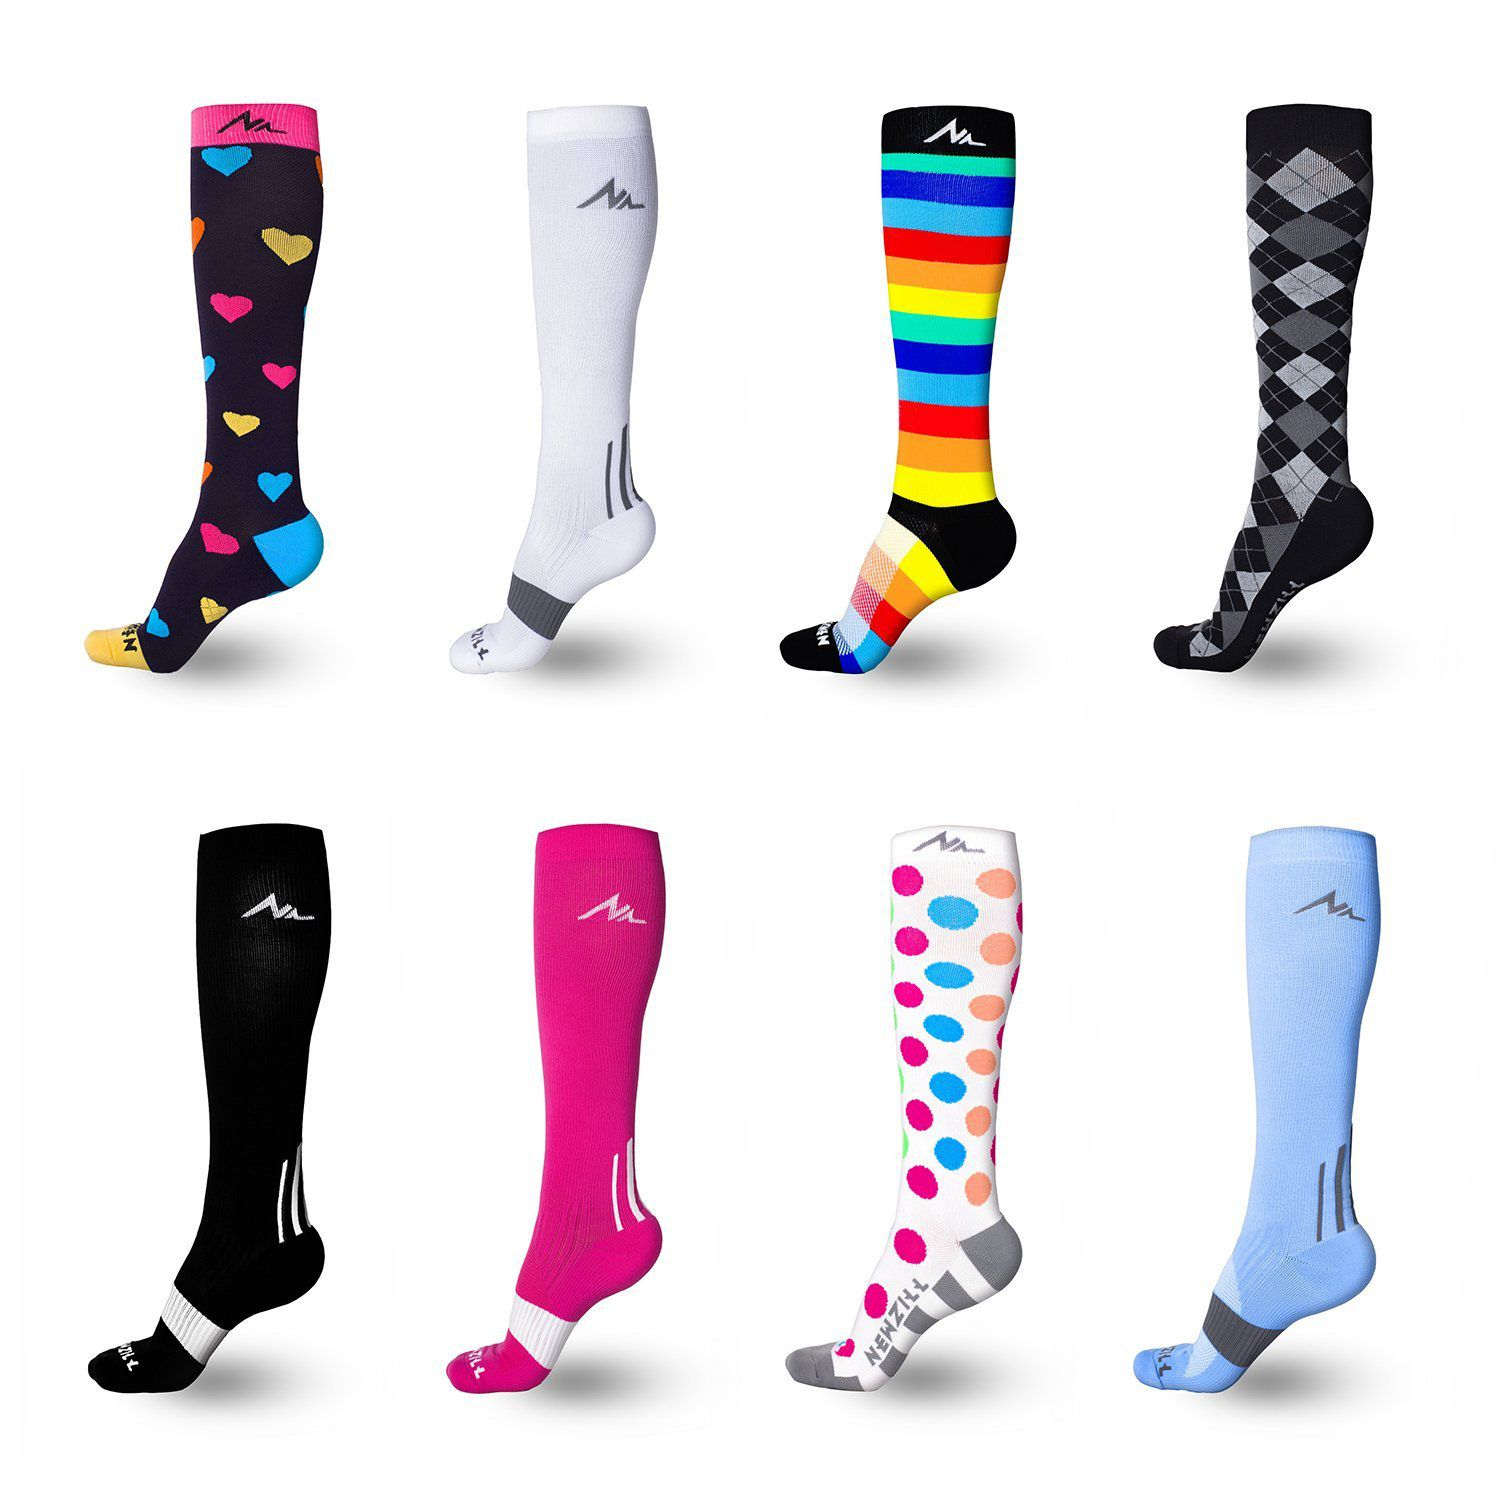 84f2599d4aa8 The 8 Best Airplane Compression Socks of 2019